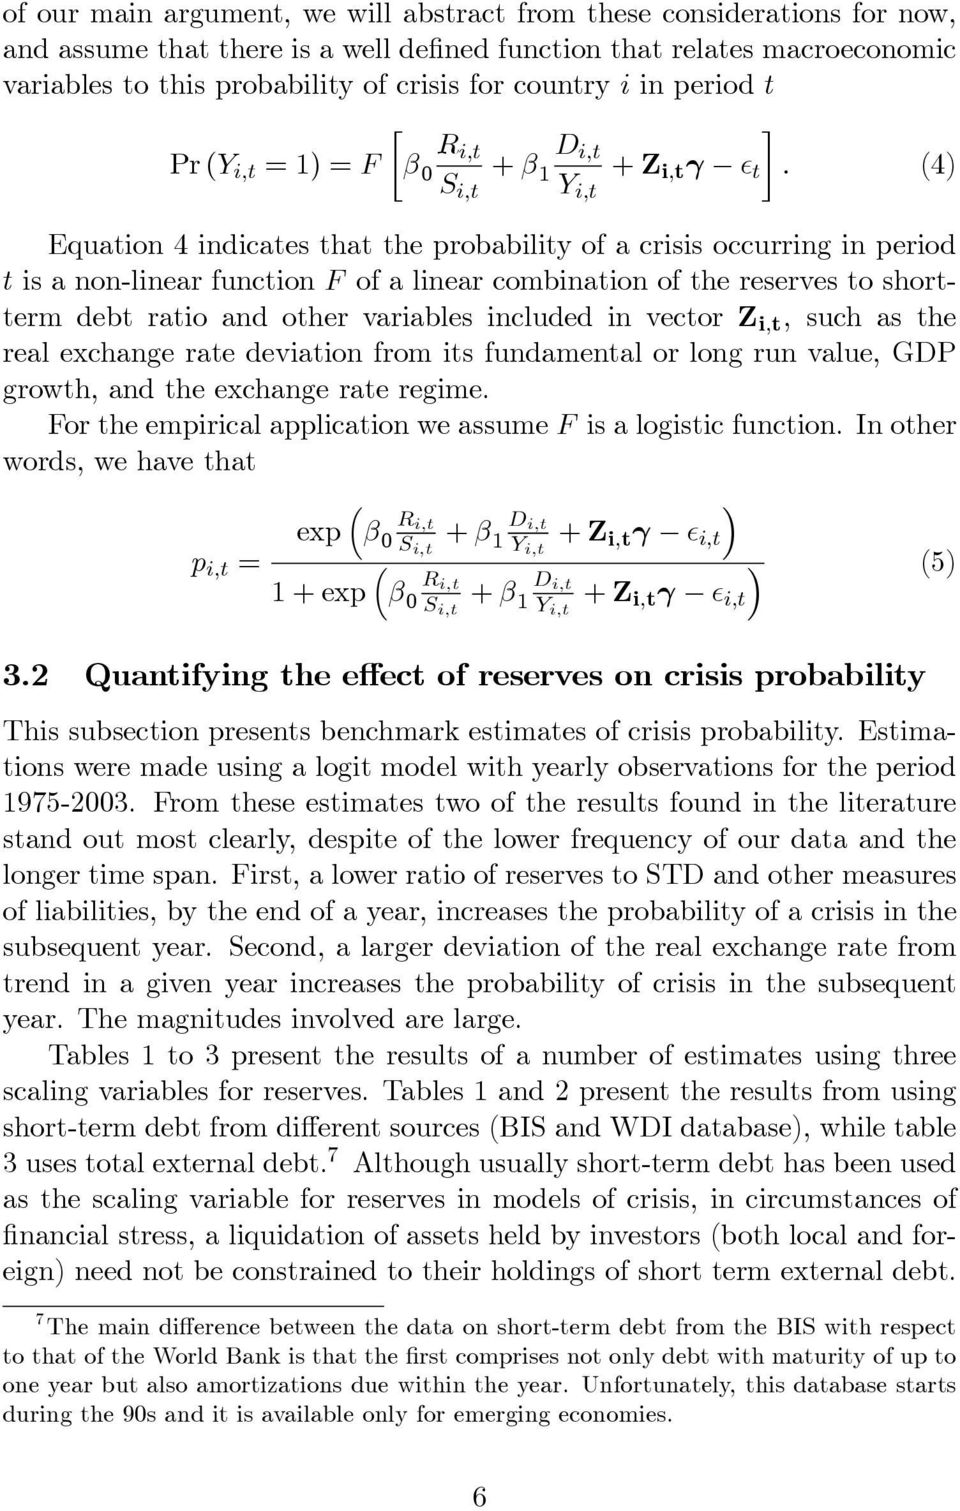 (4) i,t Y i,t Equation 4 indicates that the probability of a crisis occurring in period t is a non-linear function F of a linear combination of the reserves to shortterm debt ratio and other